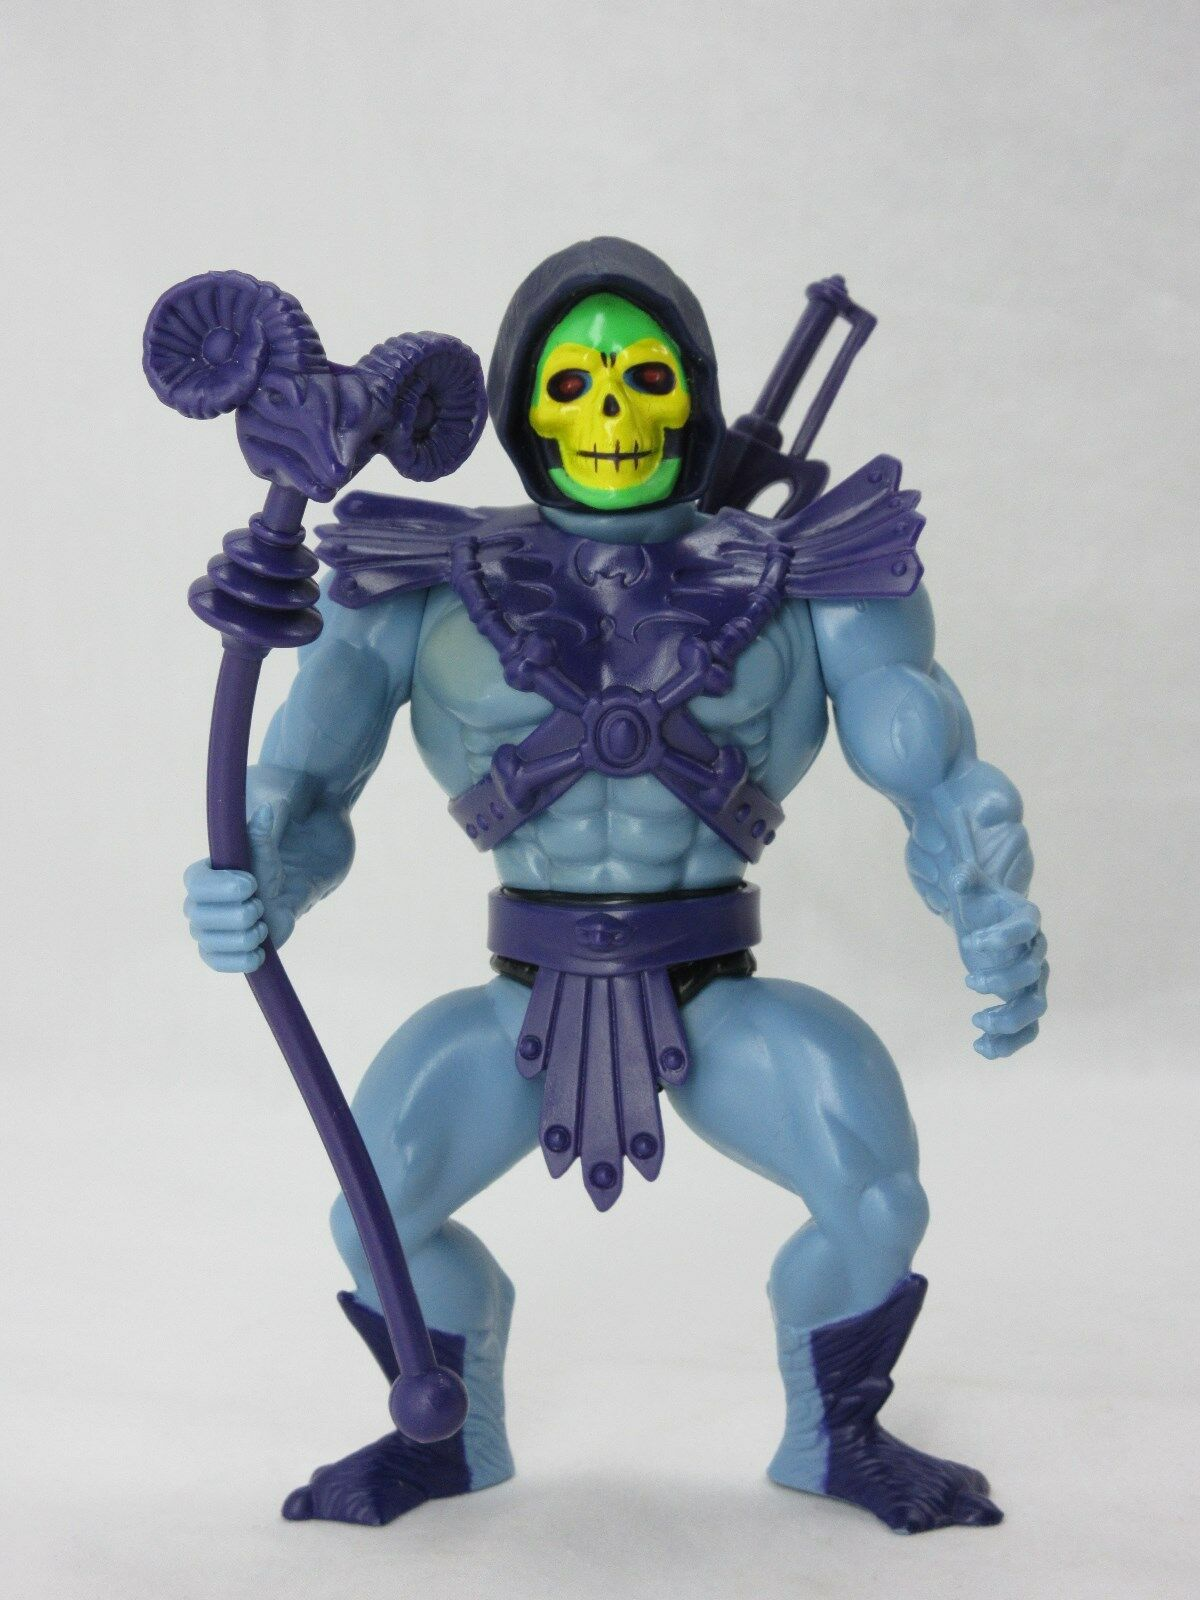 MOTU,Commemorative SKELETOR,Masters of the Universe,100% complete,He Man